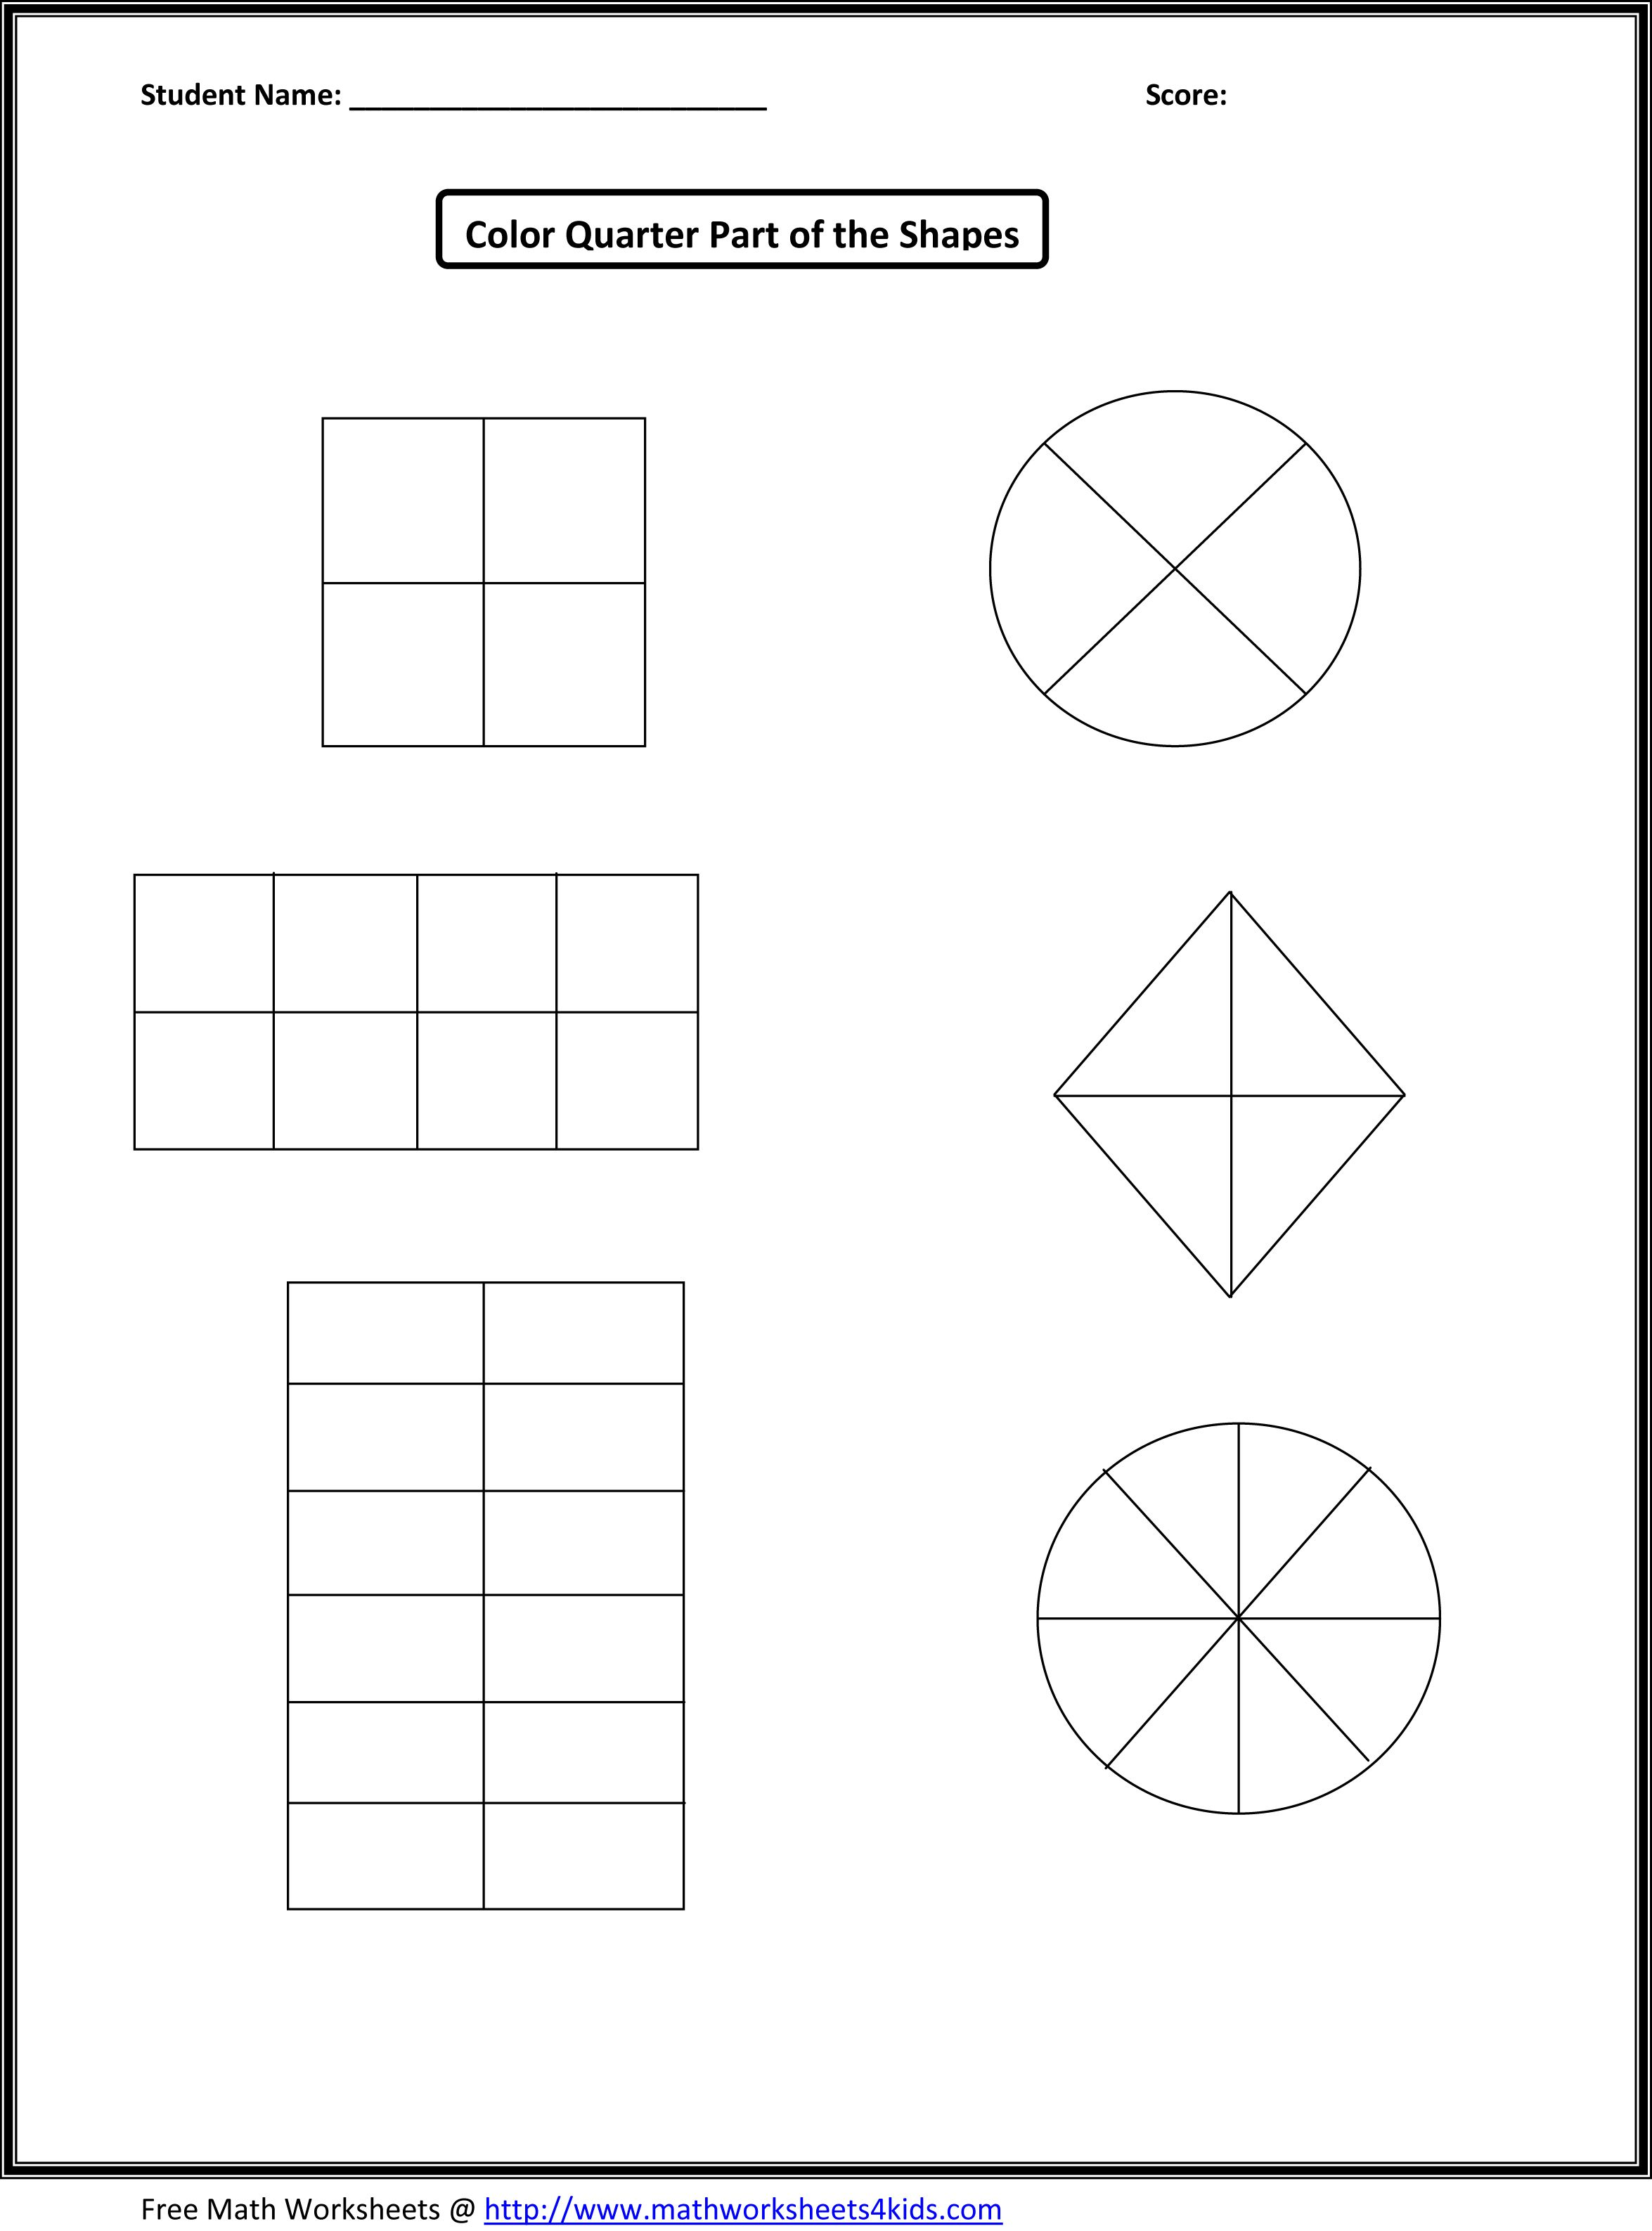 Free Worksheet Fraction Worksheets For 1st Grade this would work for first grade fraction number sense assessment but i have them